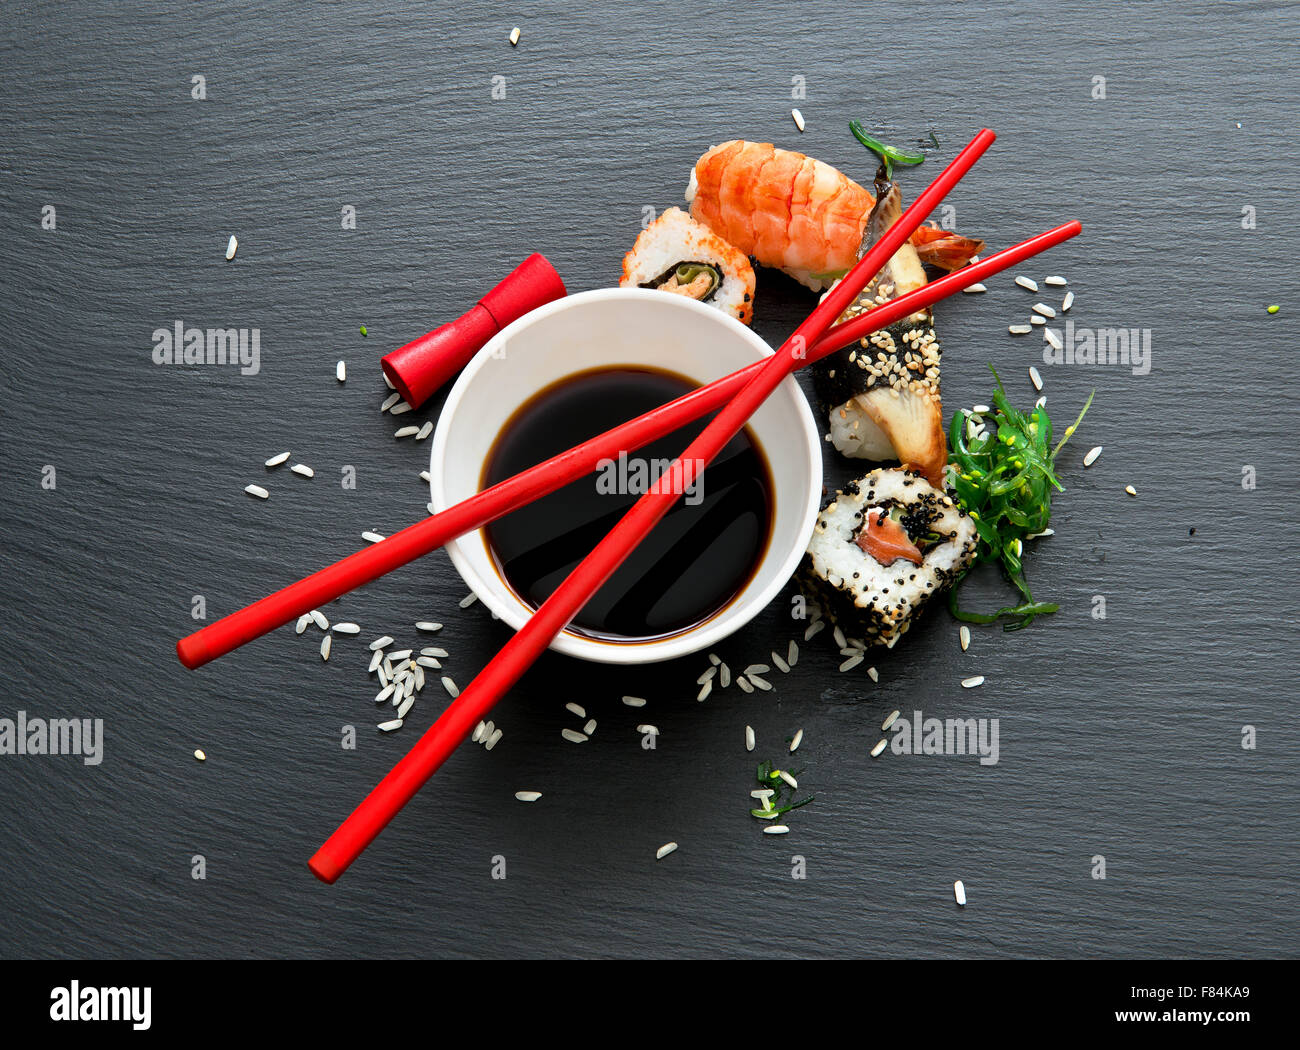 Sushi with soy in saucers on a slate table - Stock Image